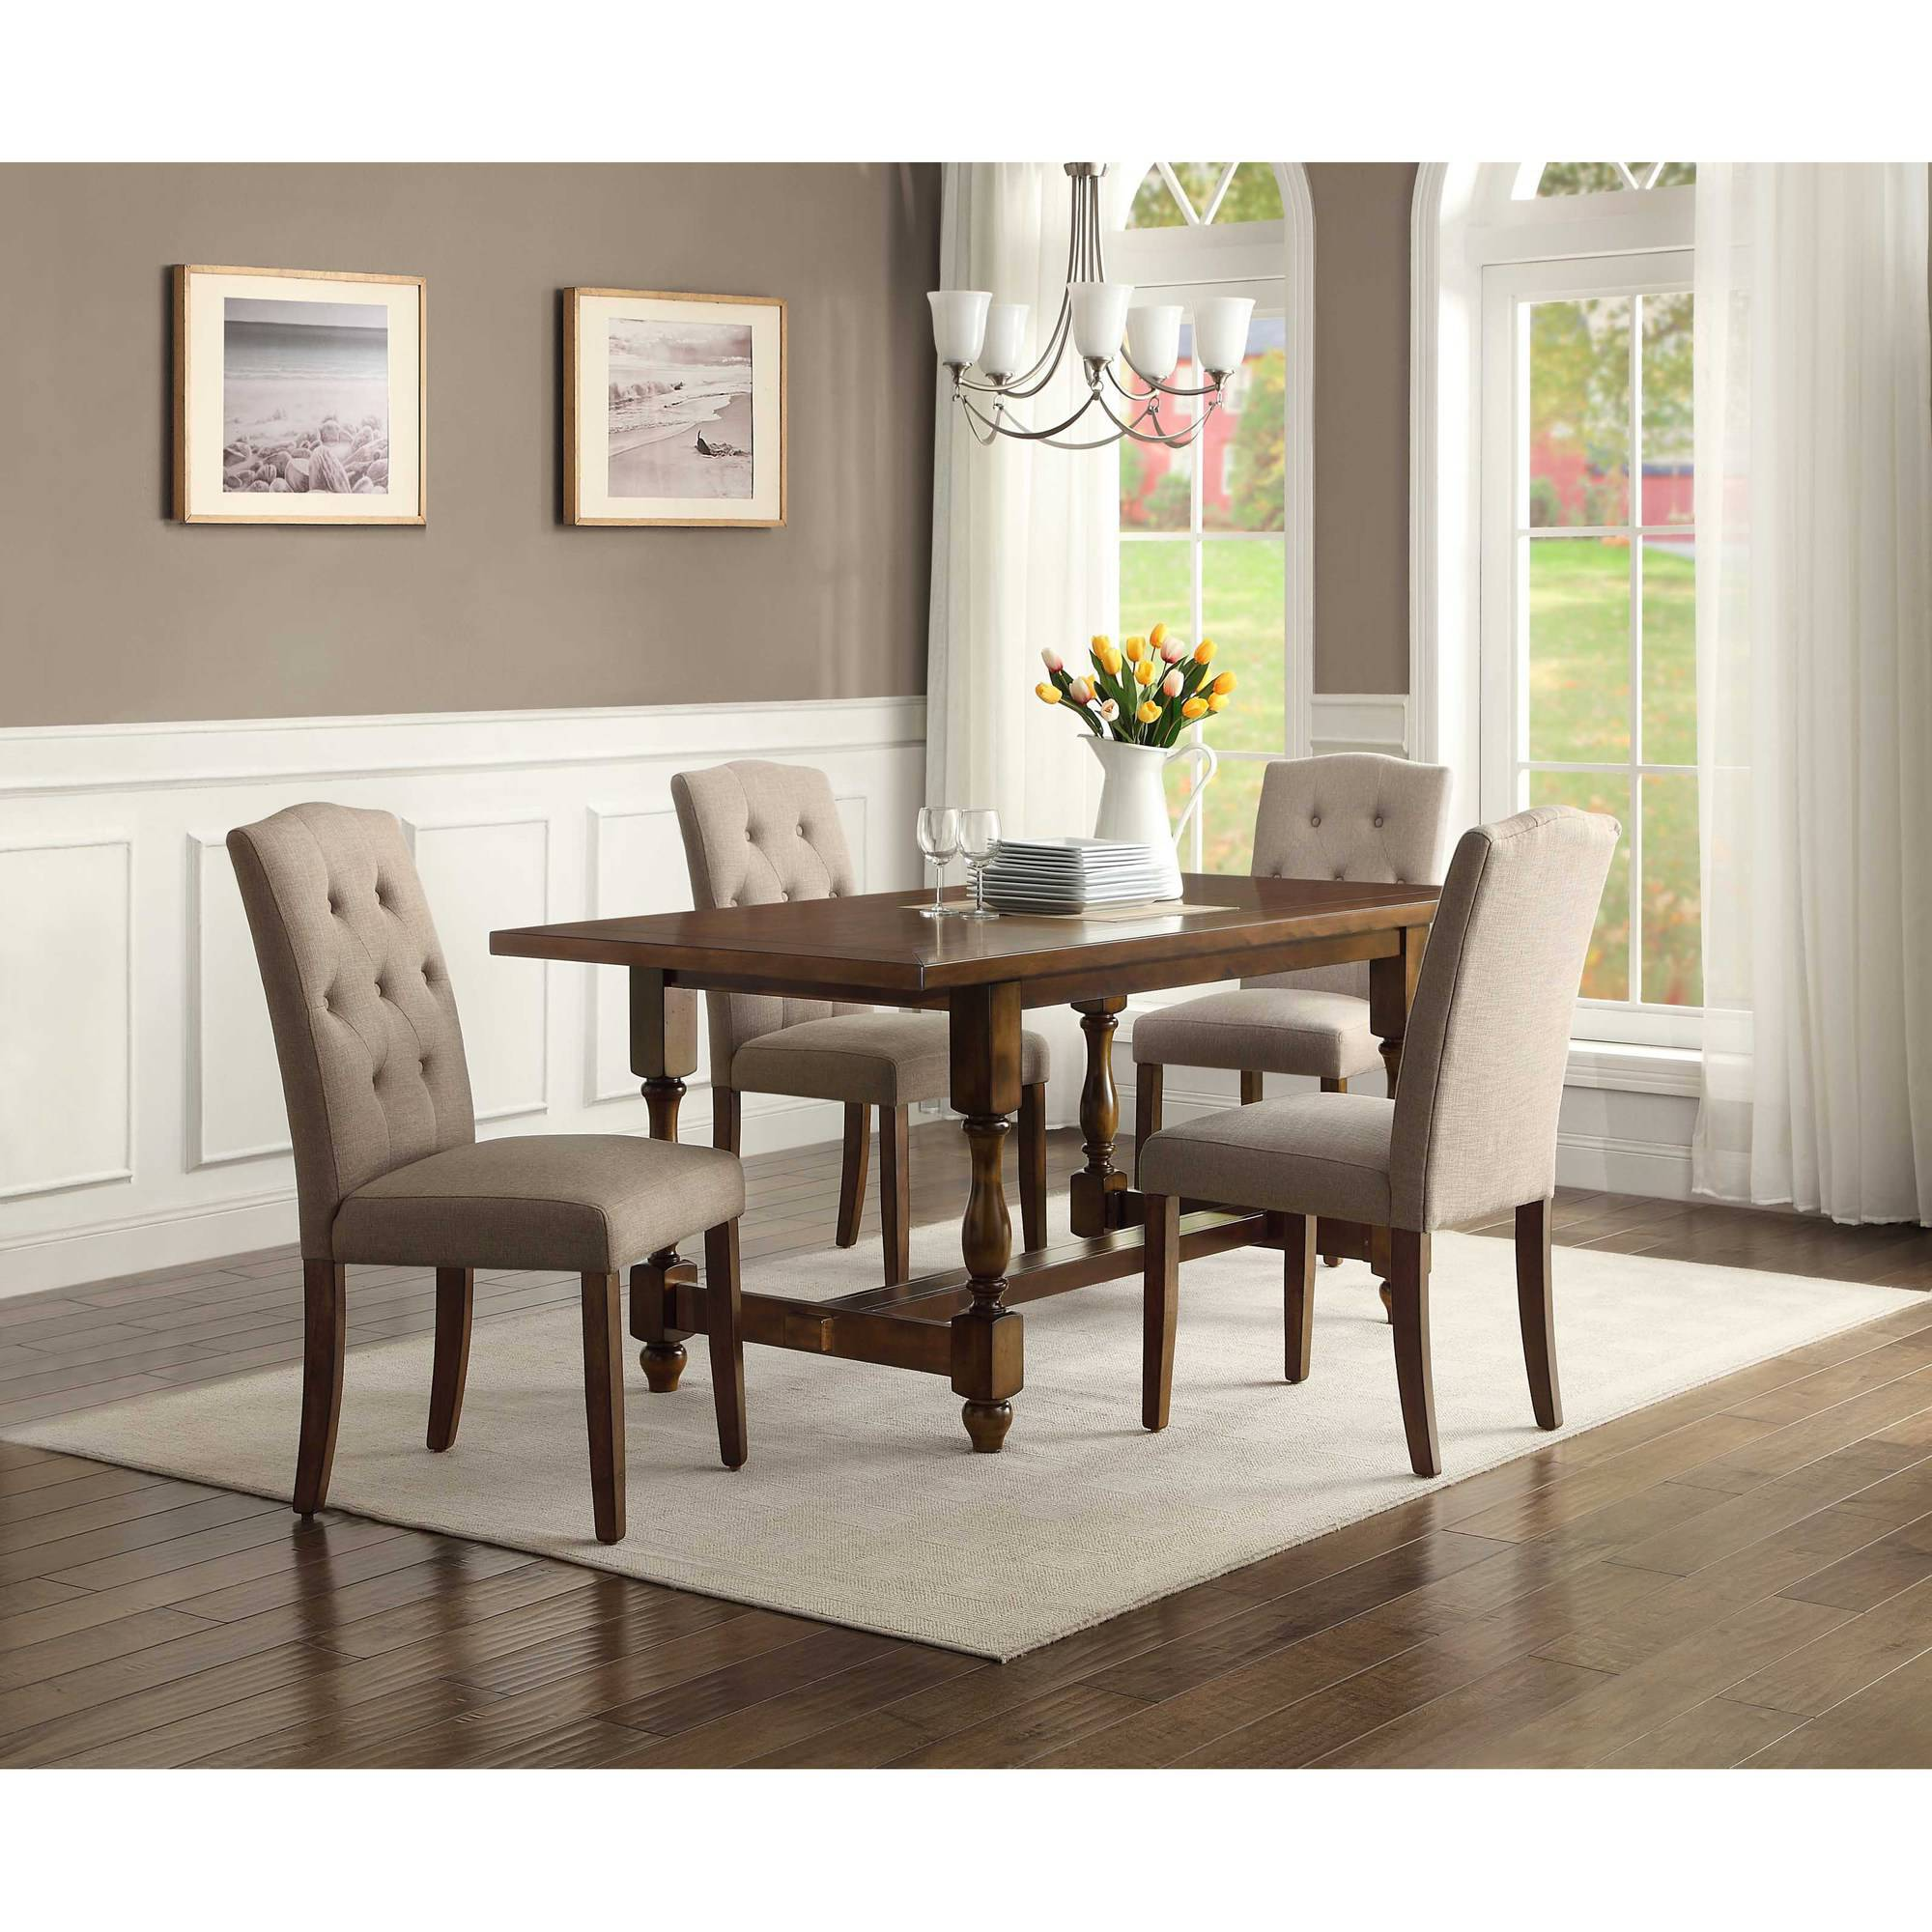 Better Homes and Gardens Maddox Crossing Dining Table with Leaf